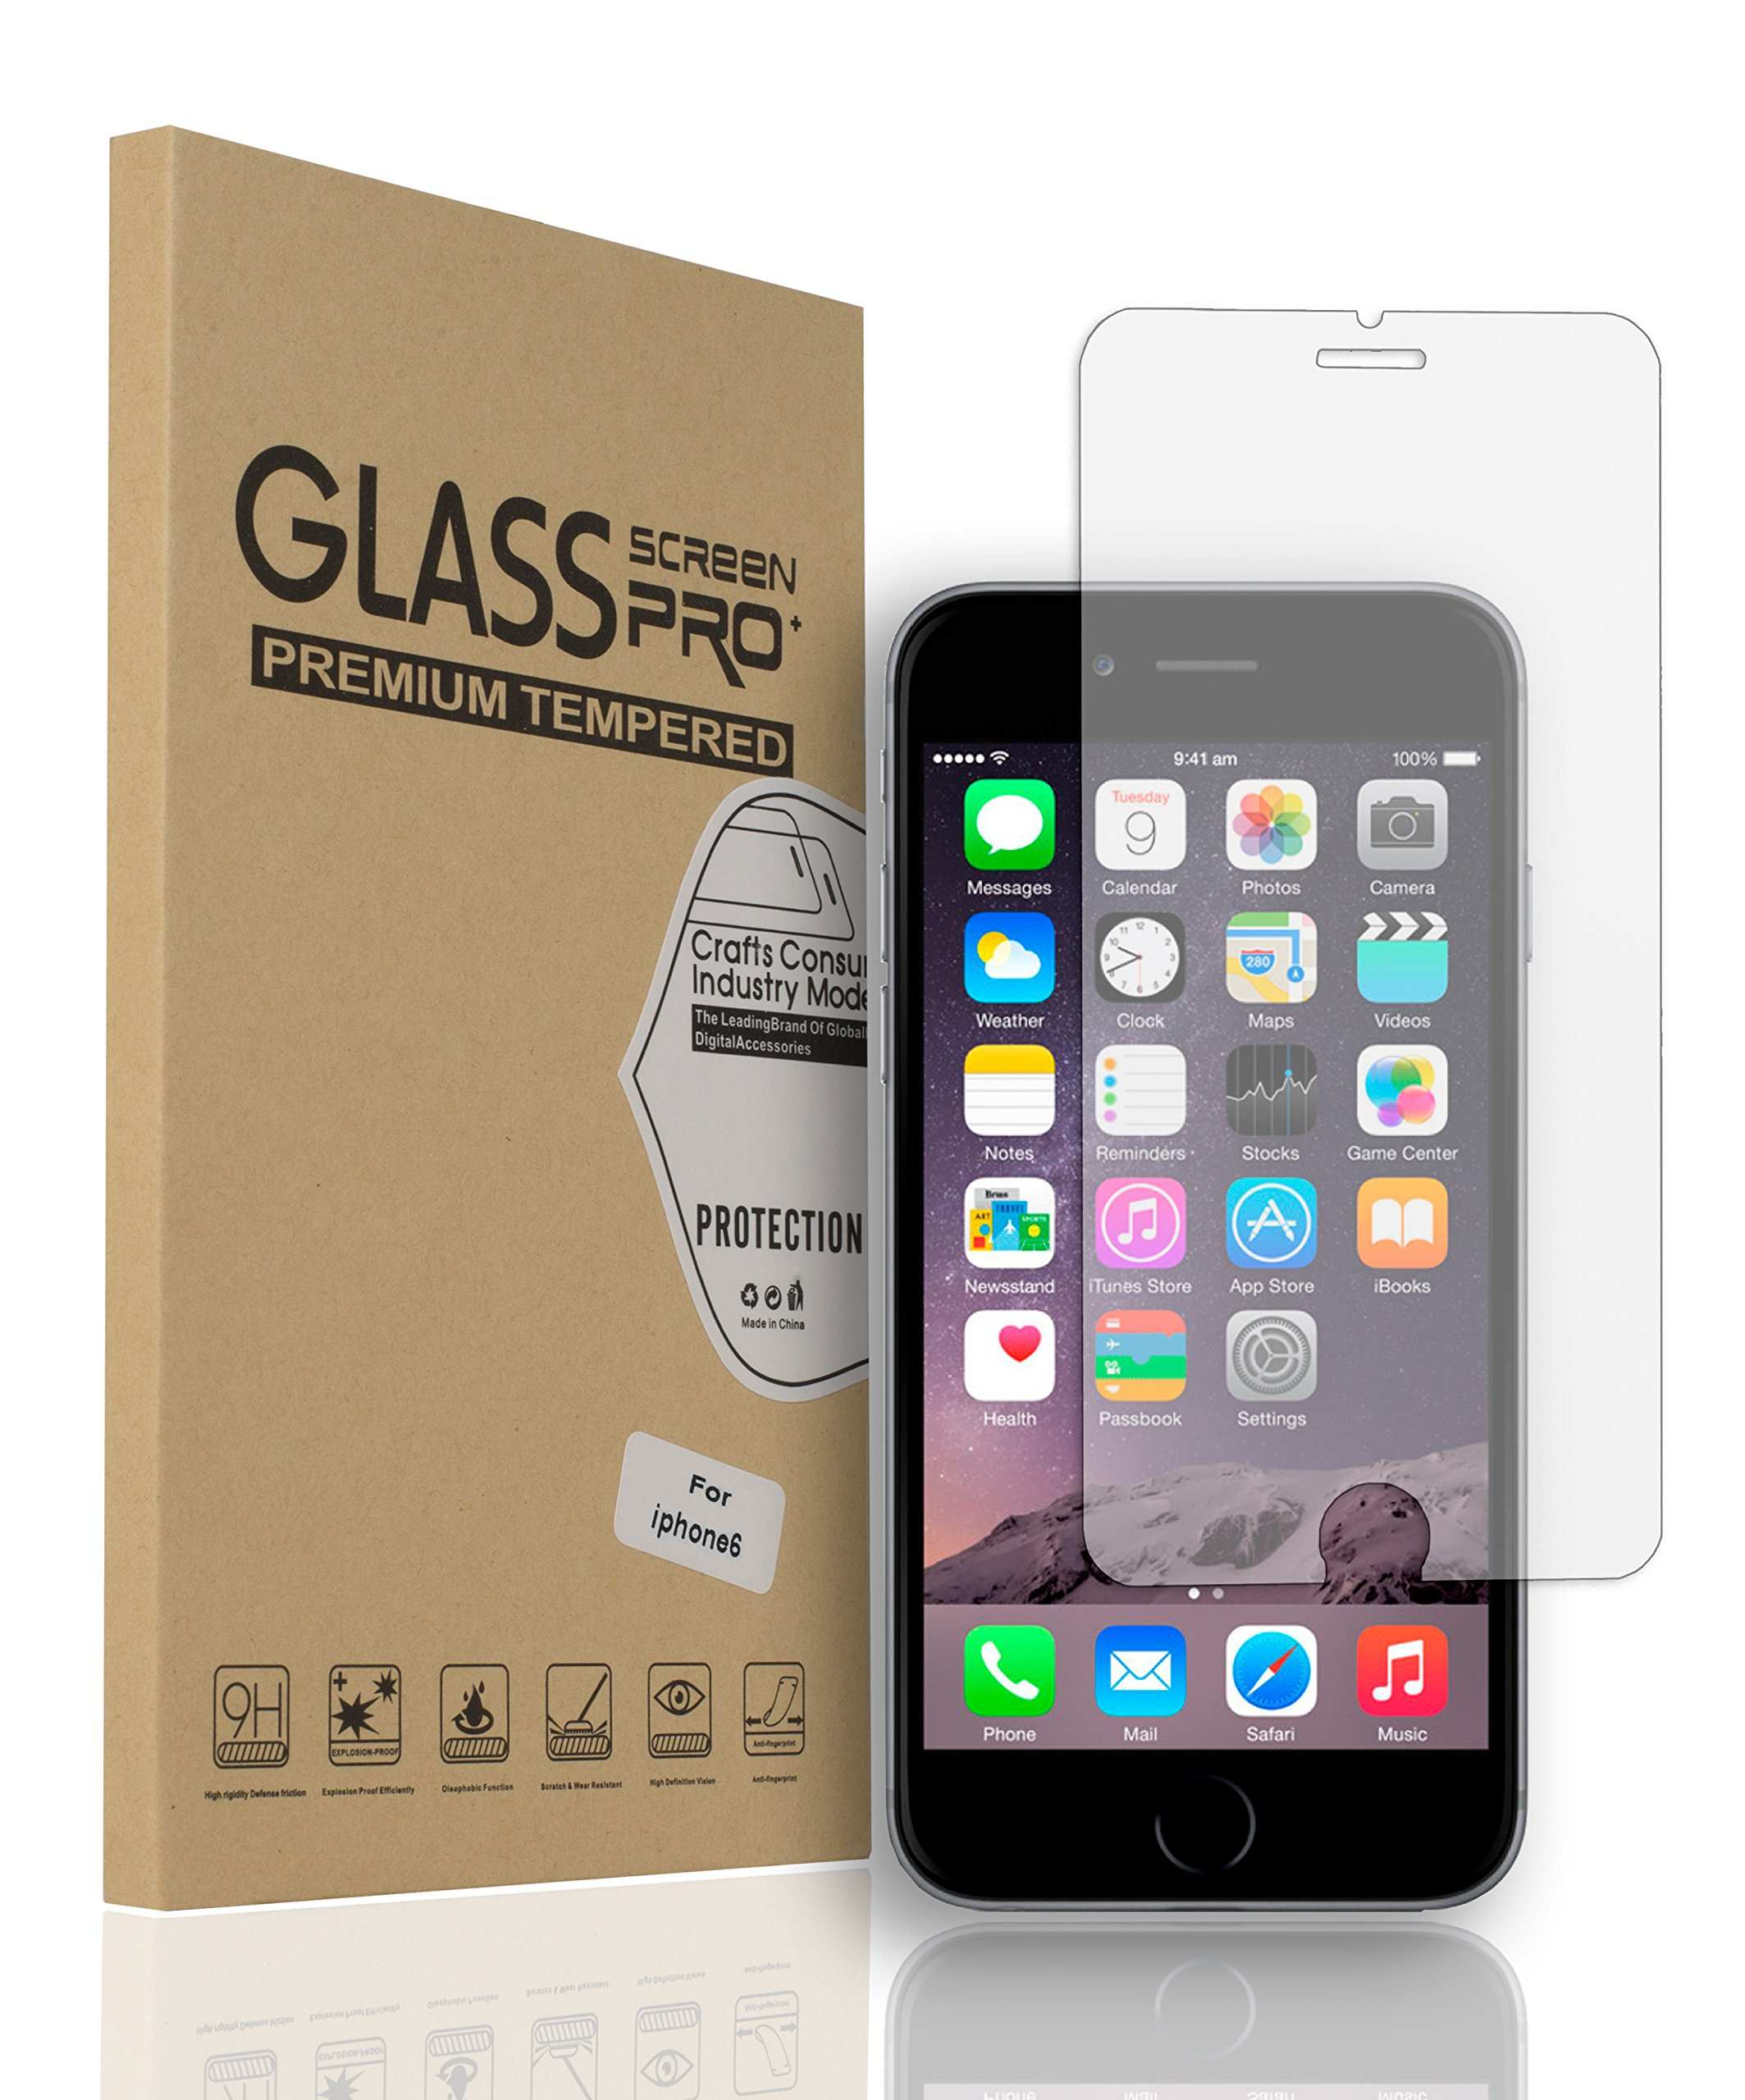 Habrok Tempered Glass for iPhone 6 and 6S, Gorilla Guard Armor Ultra-Thin Clear Screen Protector Tool, Apple Drop Proof, Cheap HD Anti-Scratch, Durable Life Defender for Phone Display